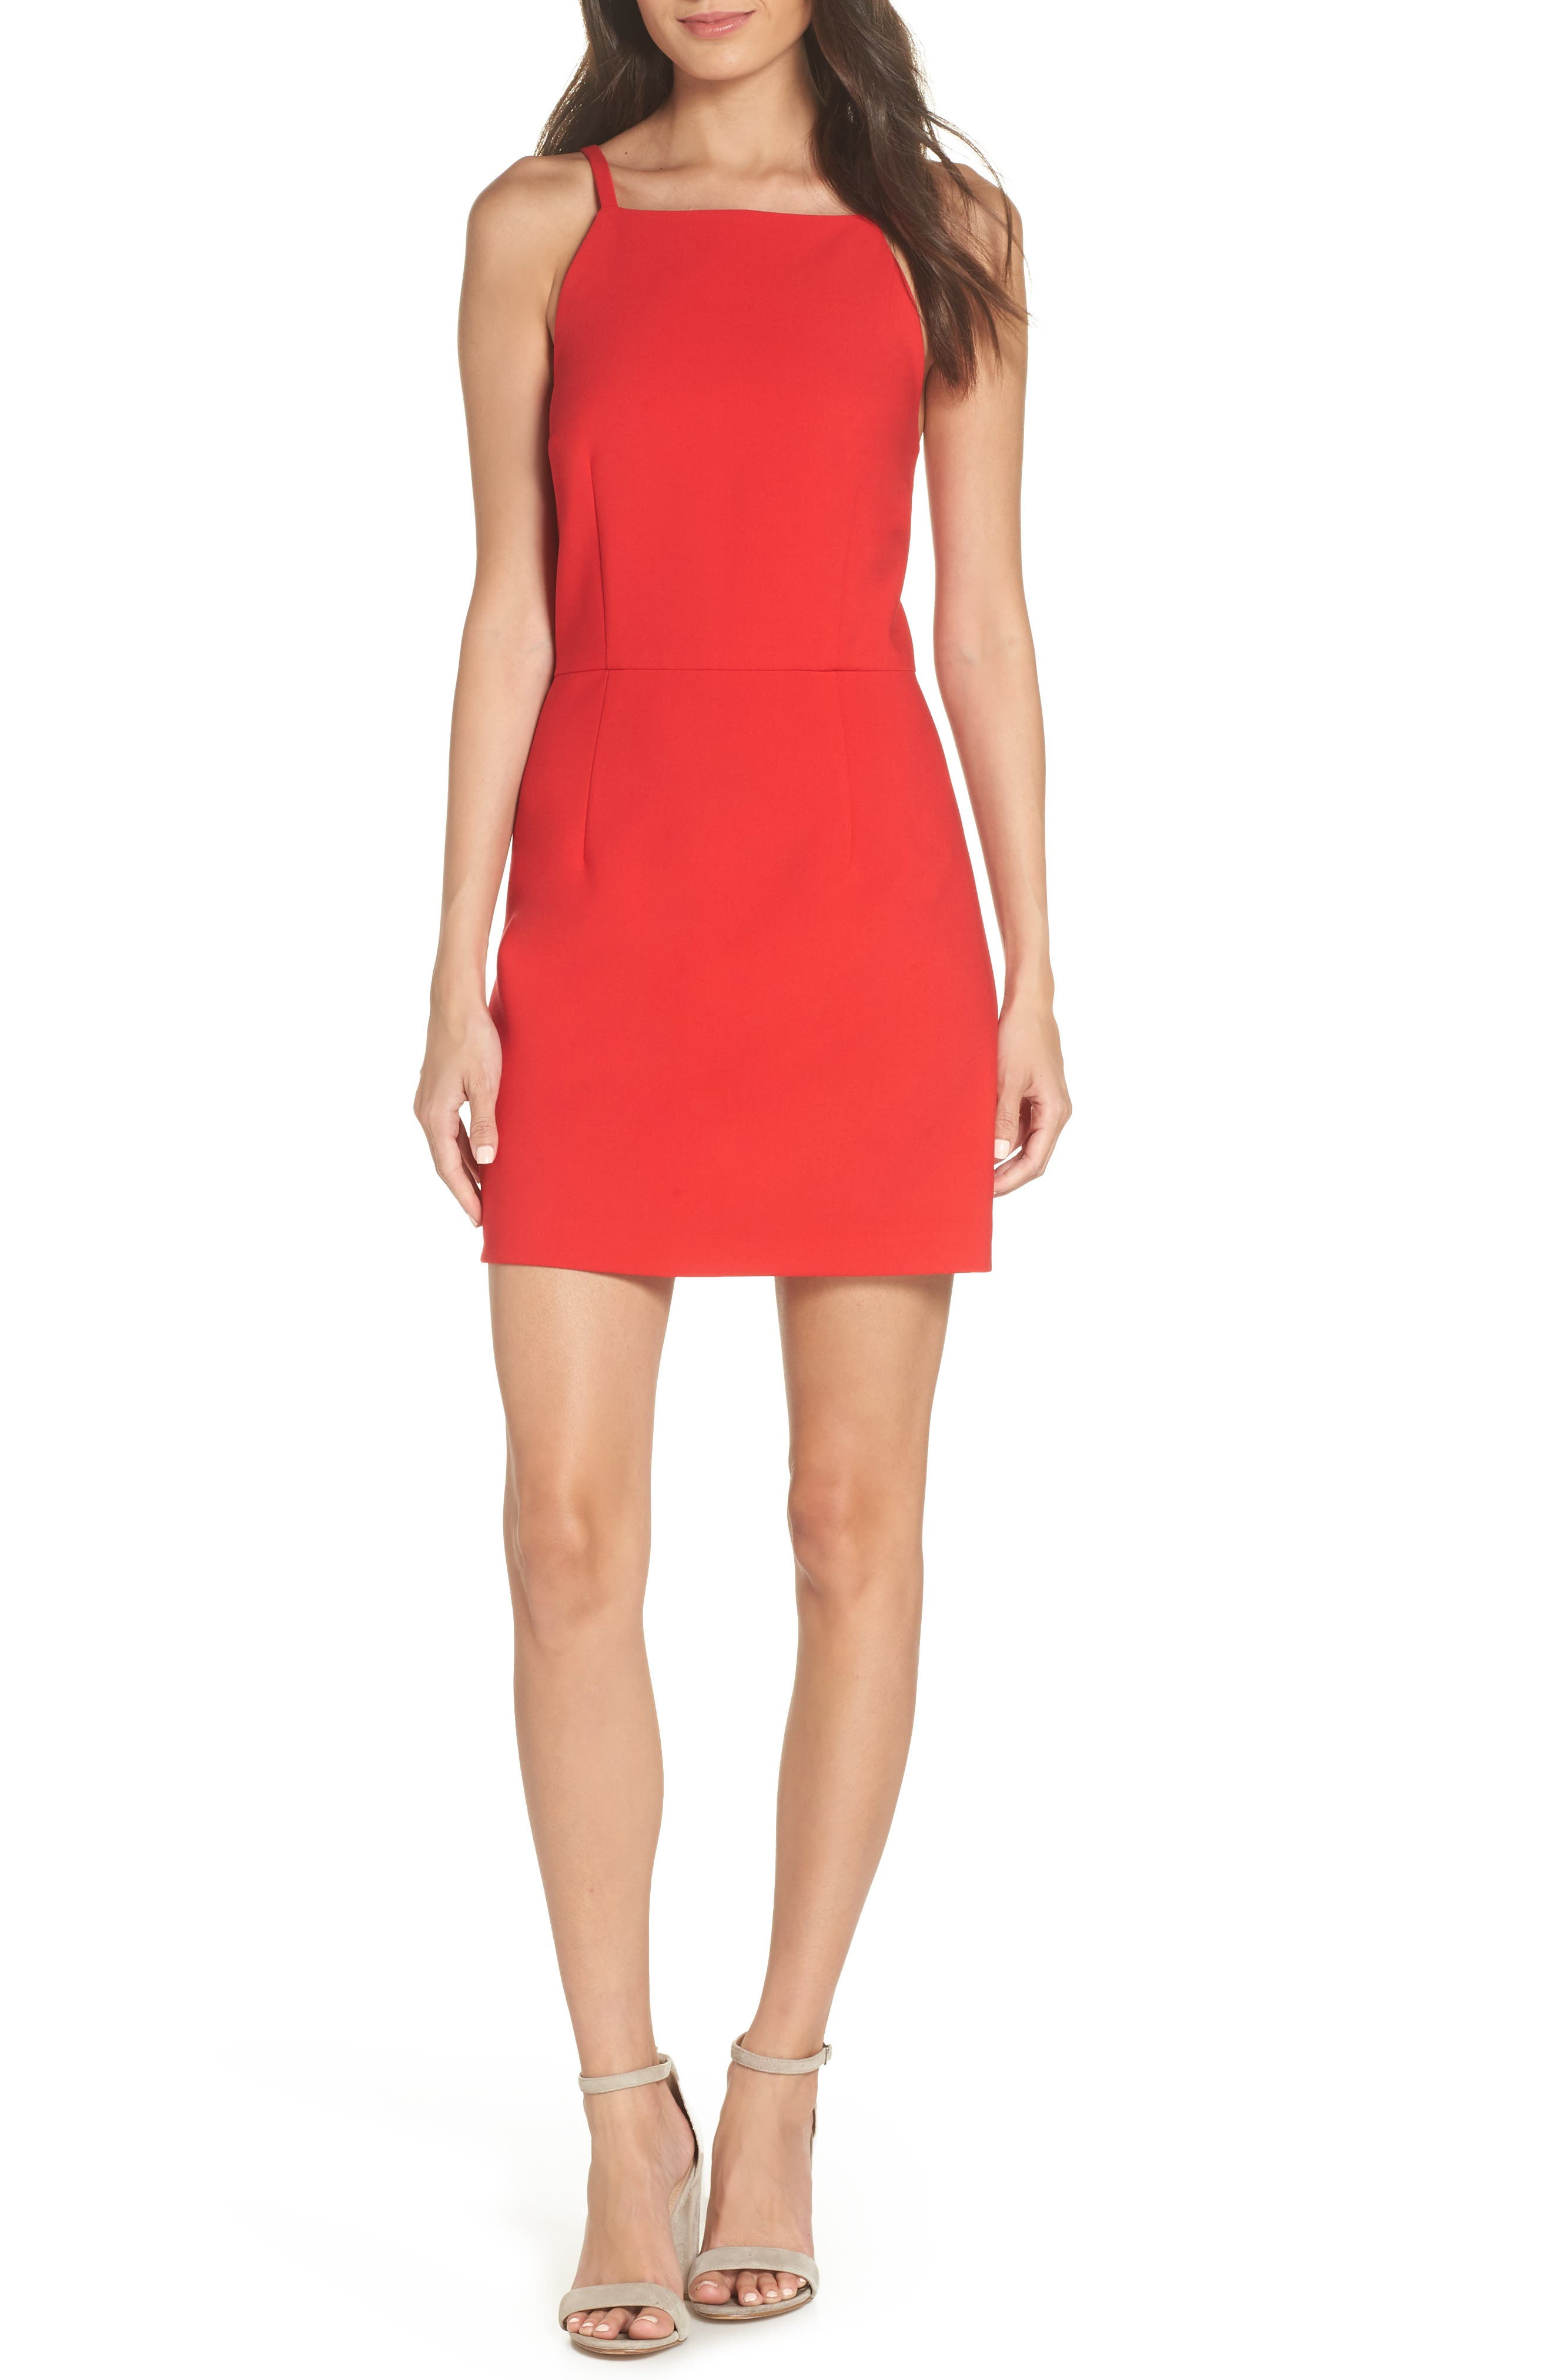 French Connection Whisper Light Sheath Minidress, Red